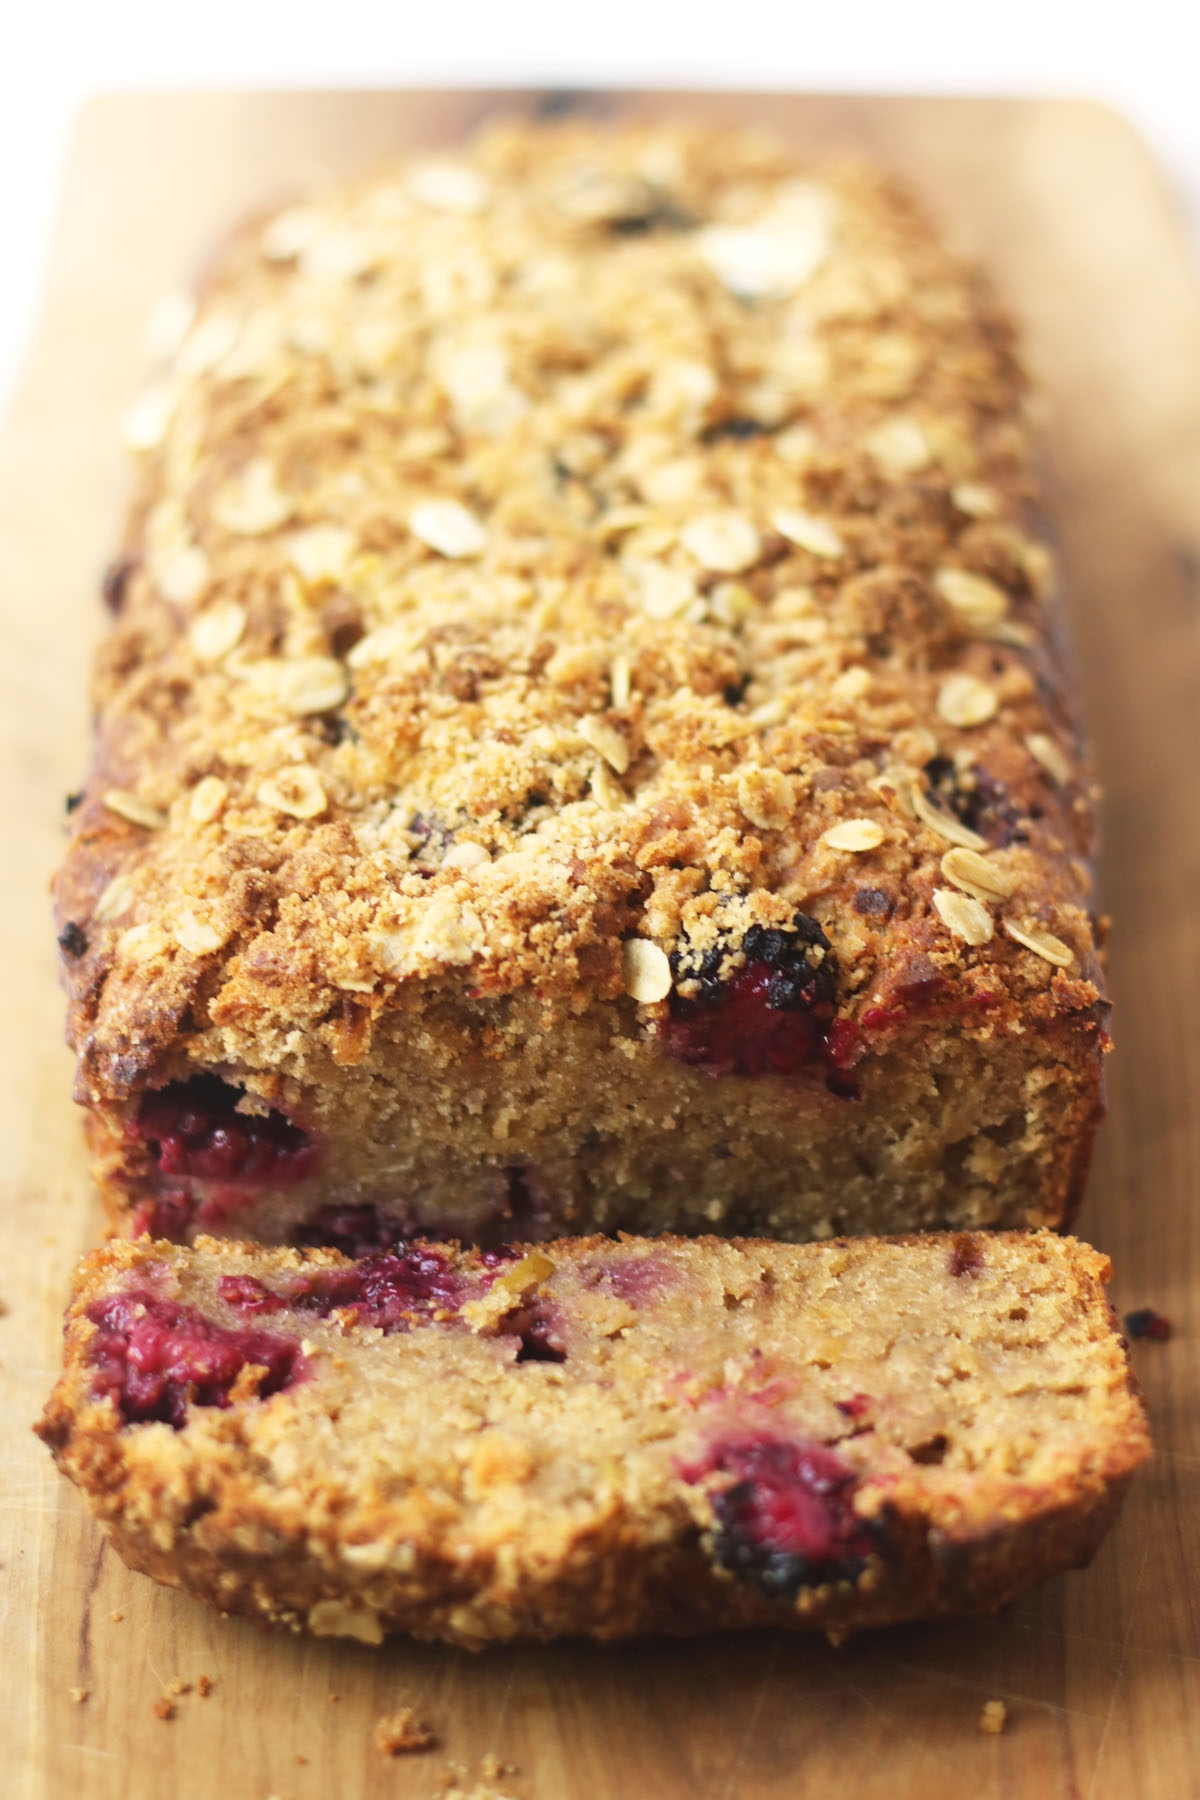 Inside my Apple and Blackberry Crumble Loaf Cake